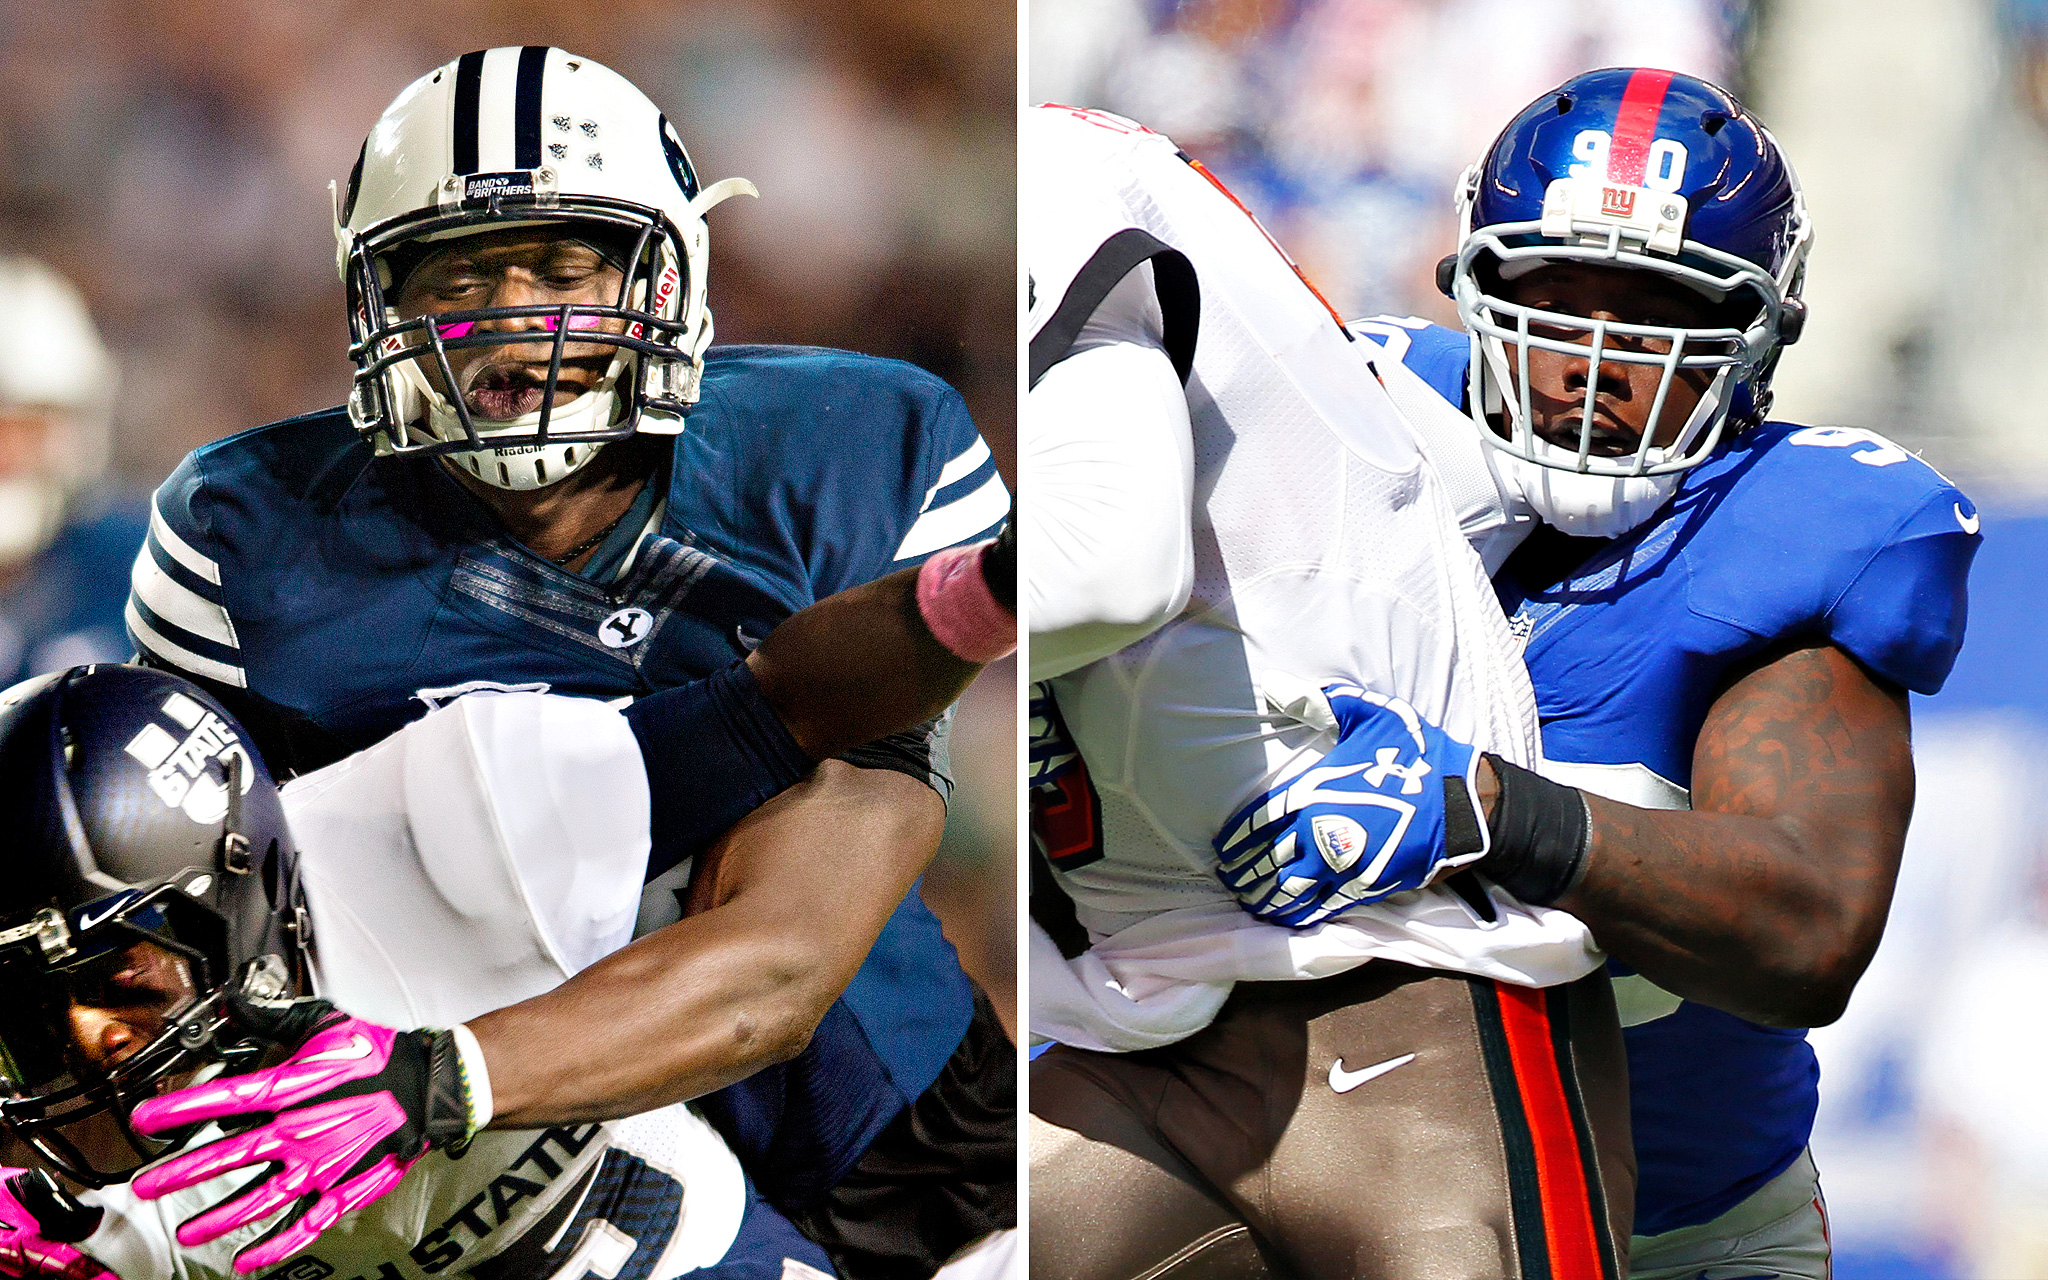 Ezekiel Ansah, BYU/Jason Pierre-Paul, NY Giants